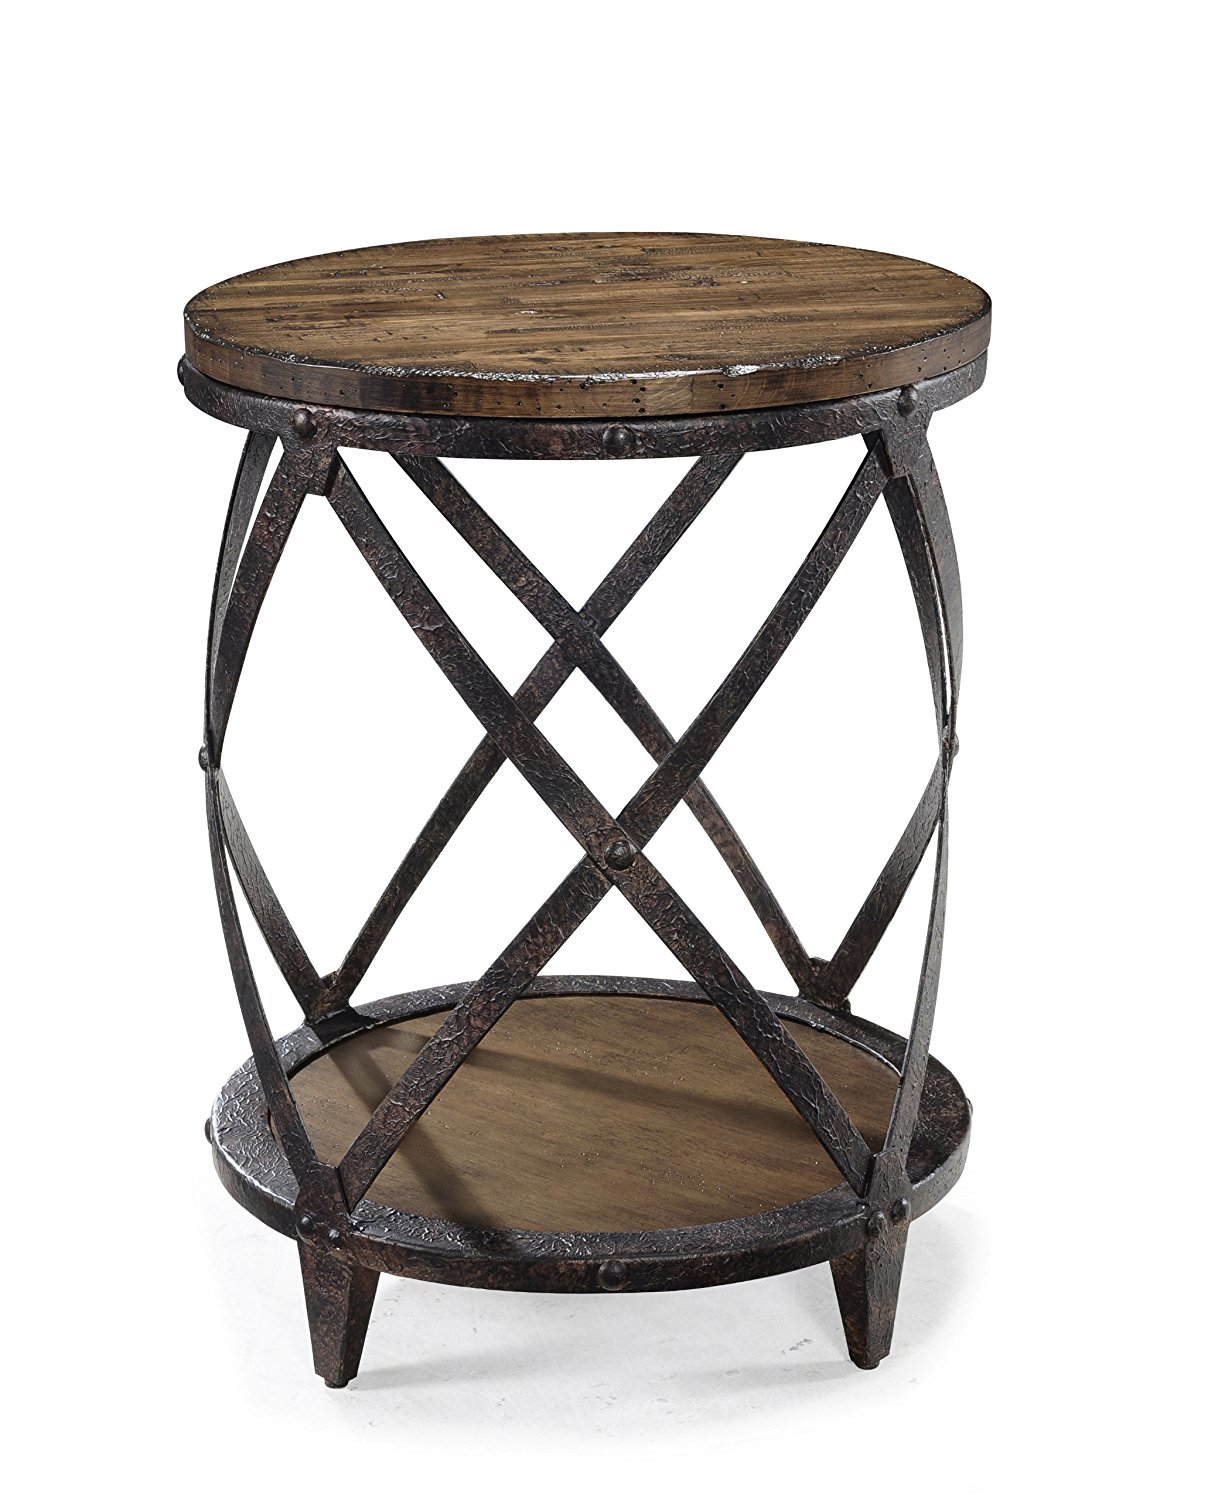 agreeable rustic white accent table round wood diy brown reclaimed black decor corner and tables lamps dining small runner tableware tablecloth distressed legs cloth full size